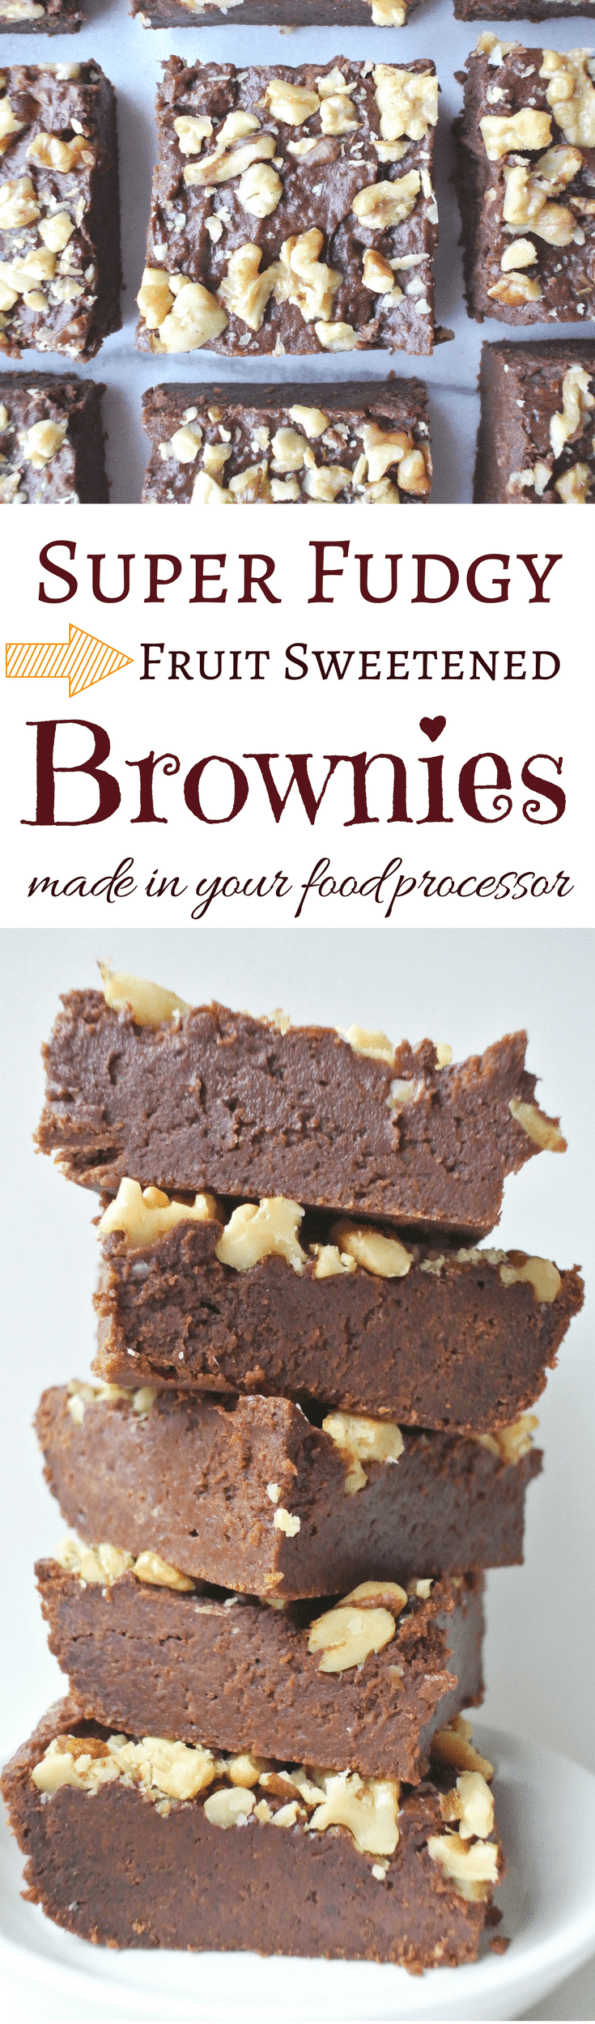 Super Fudgy Fruit Sweetened Brownies